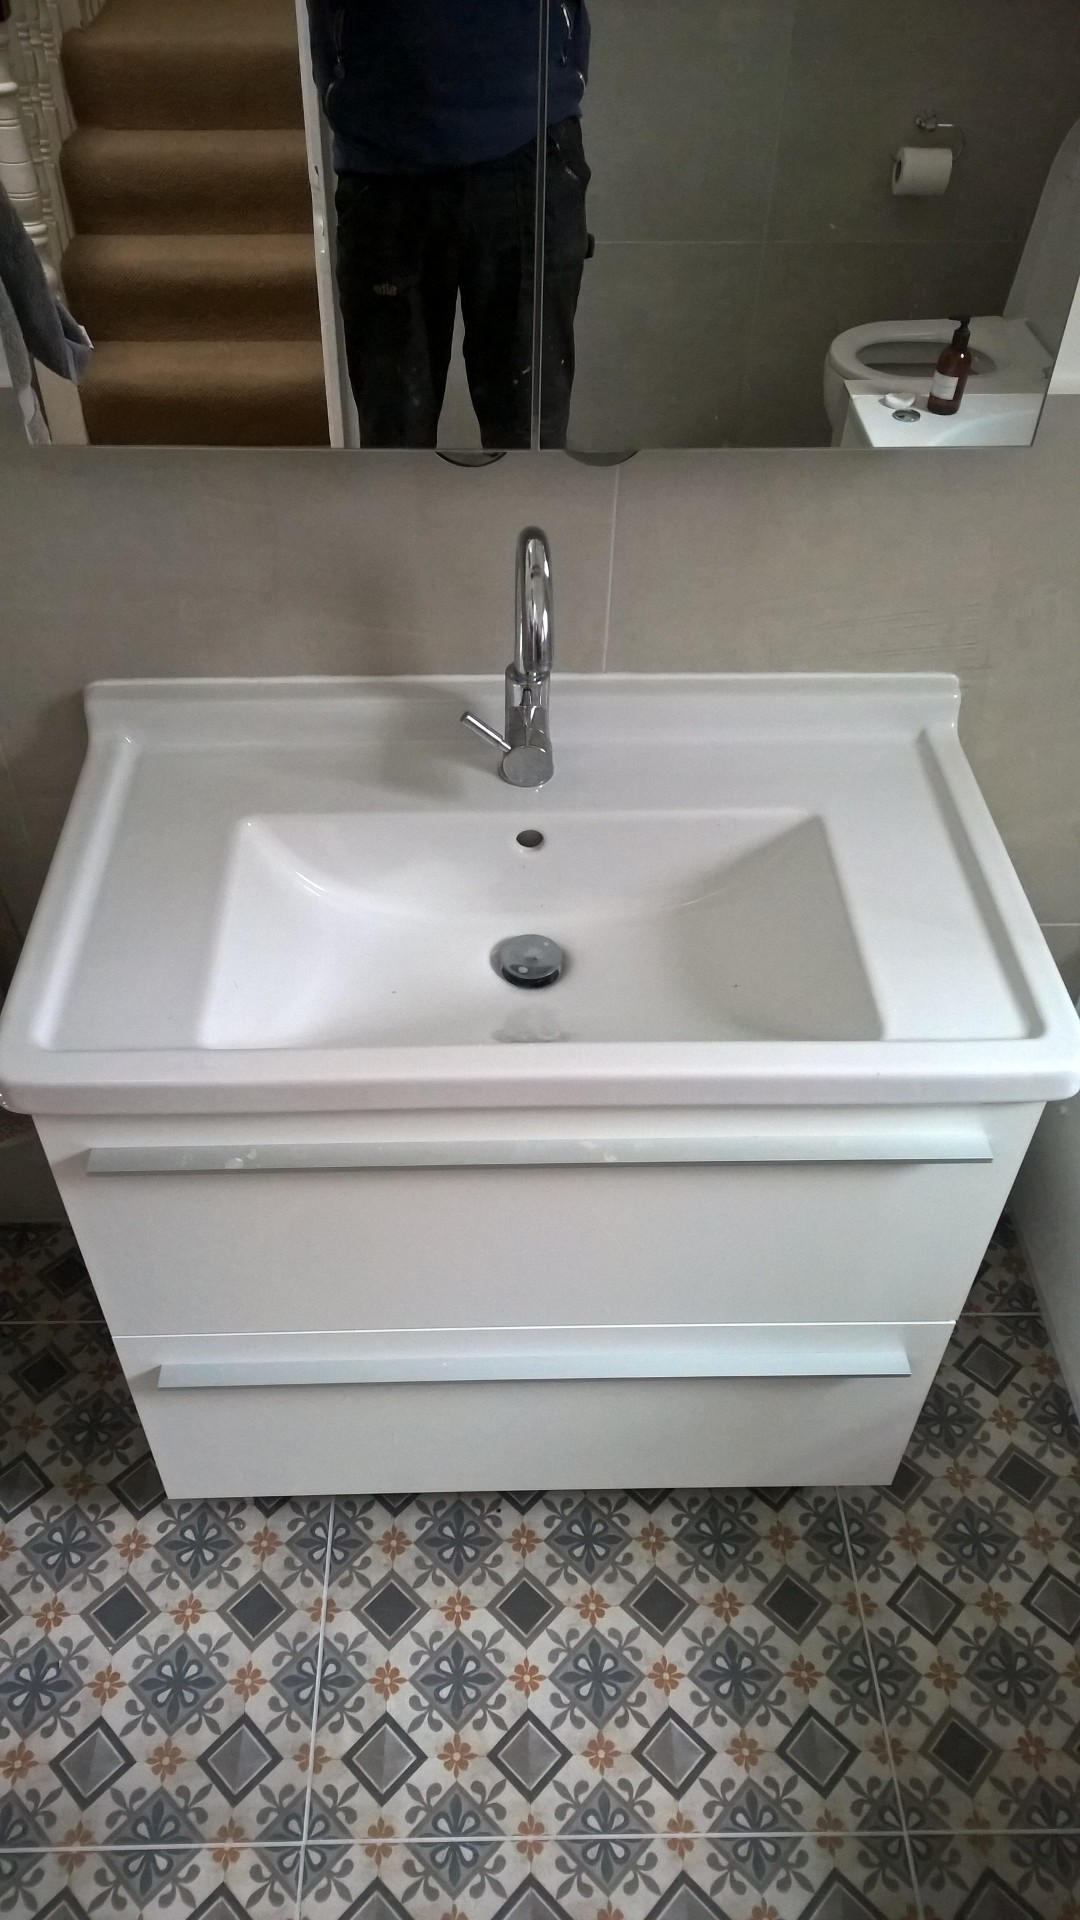 A picture of a wall hung vanity unit with two drawers